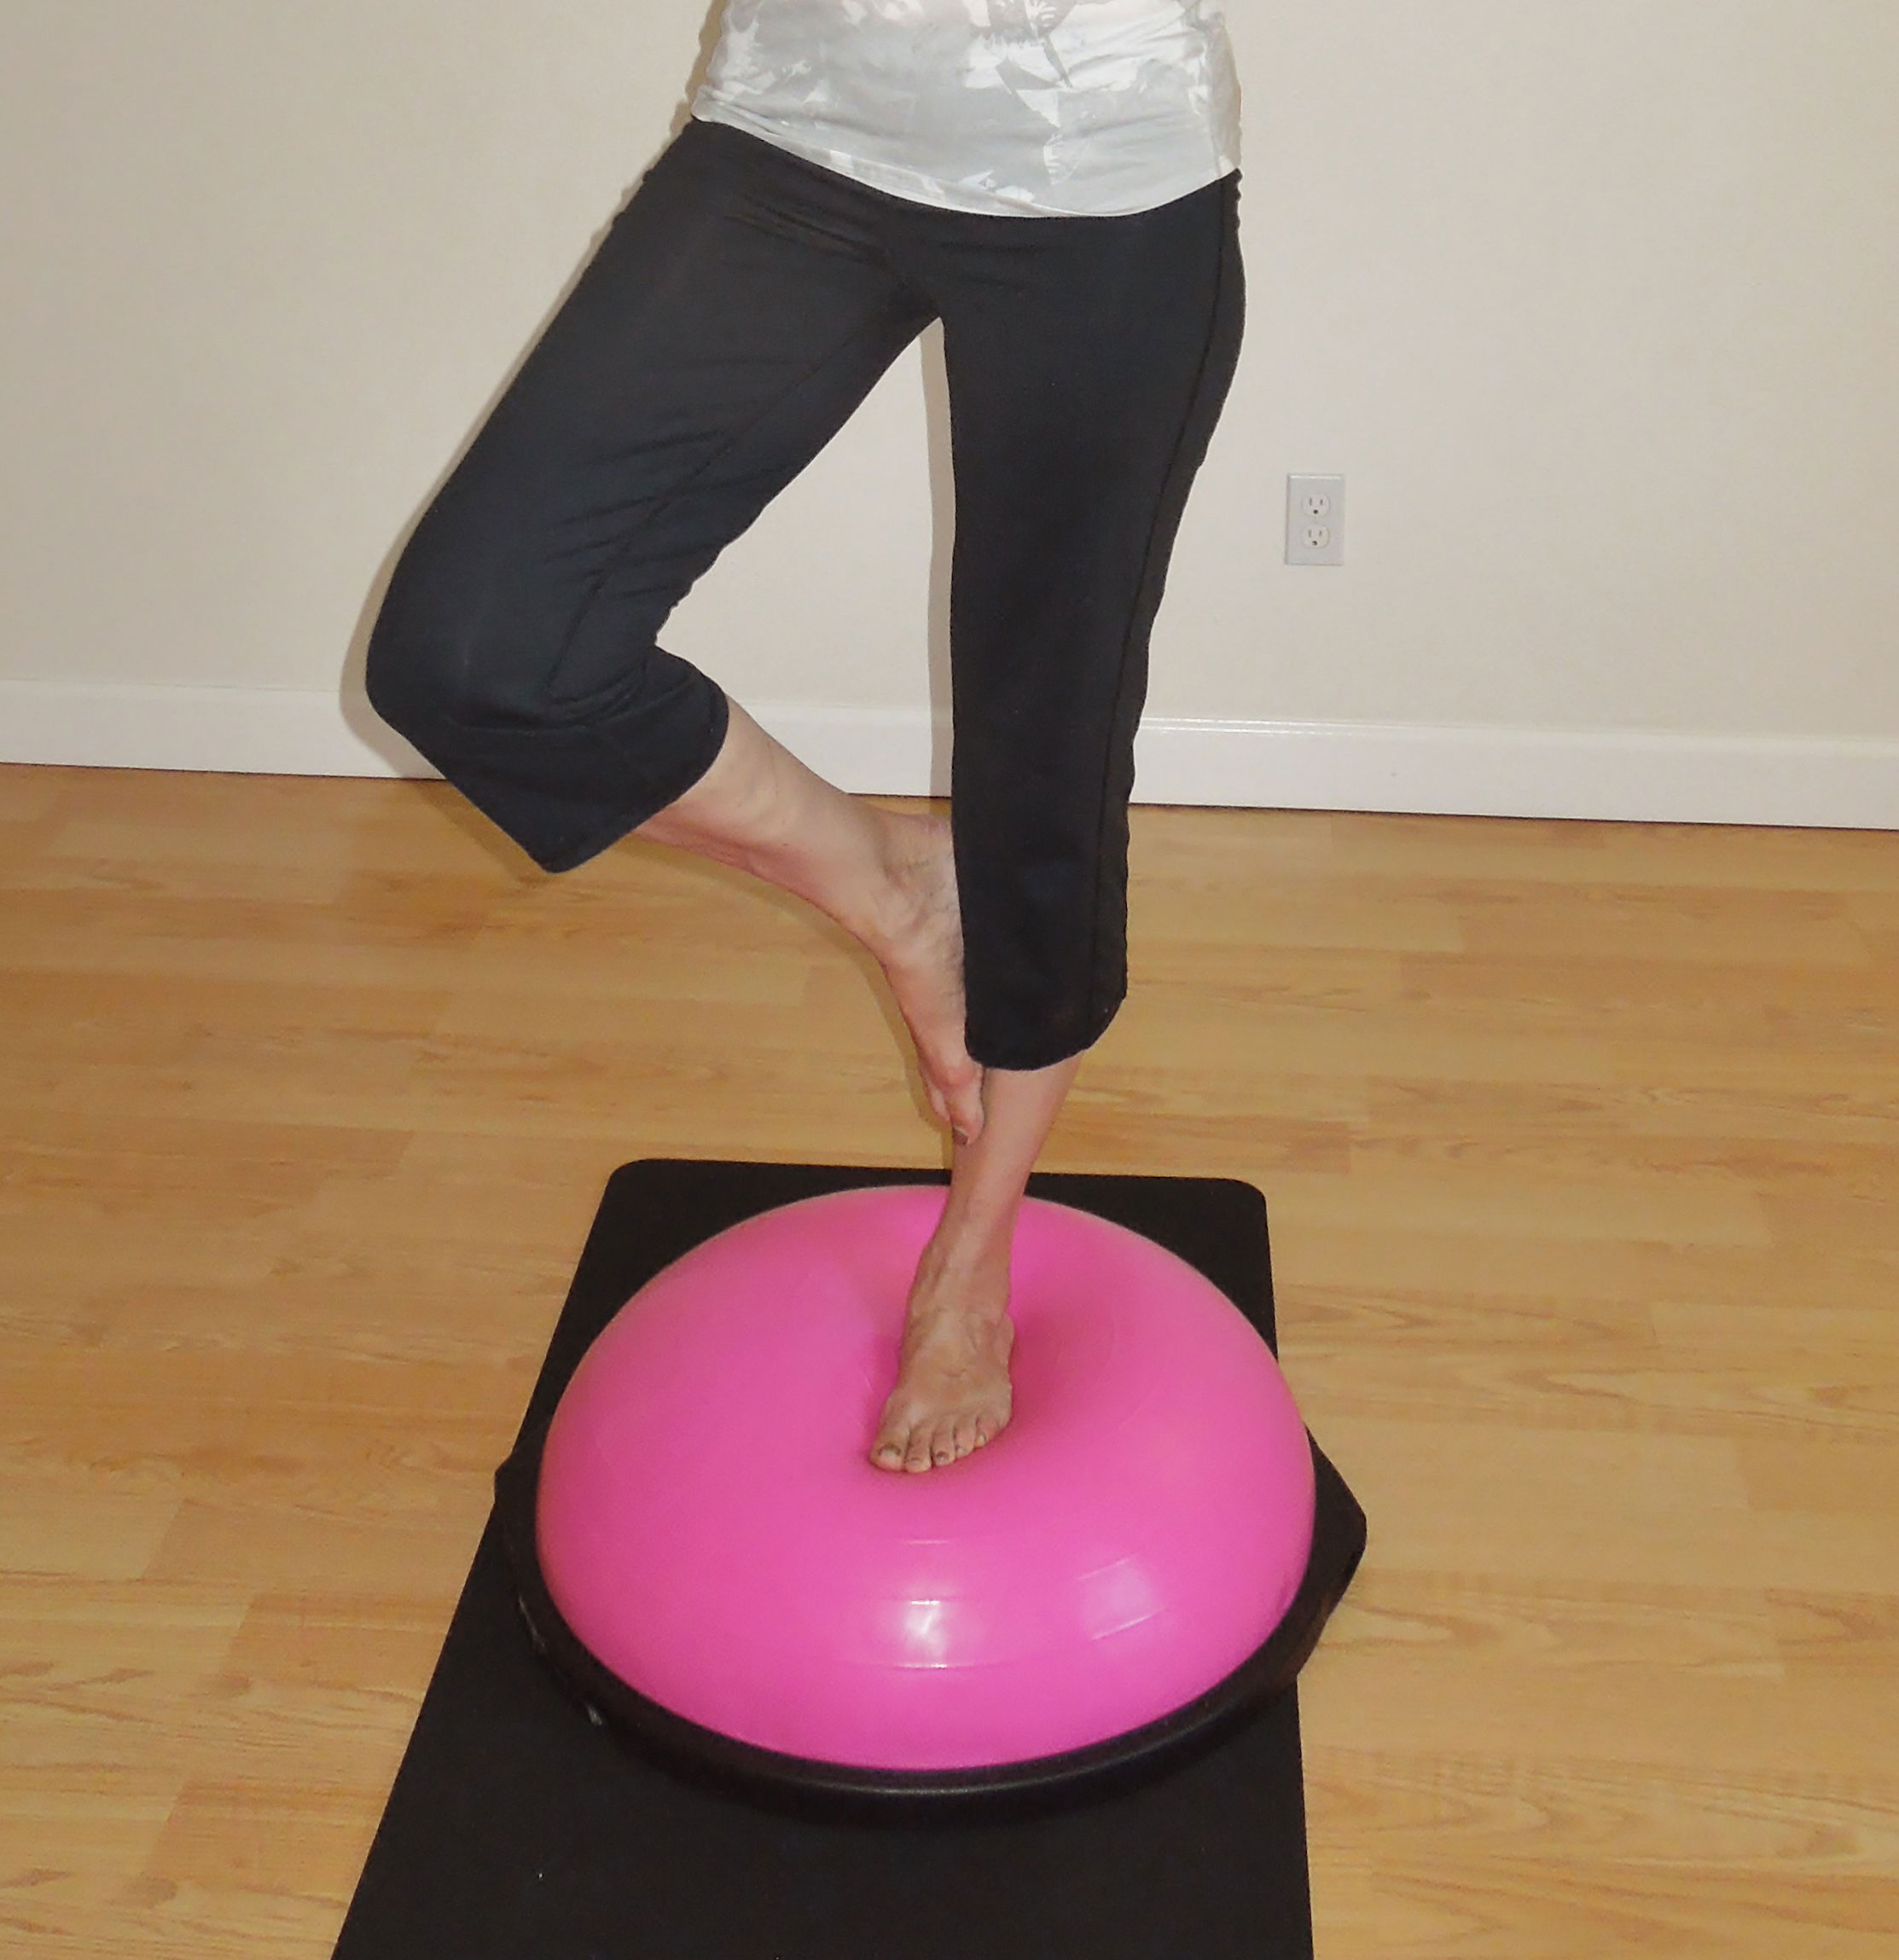 standing balance exercises, post surgery recovery, strength training over 50